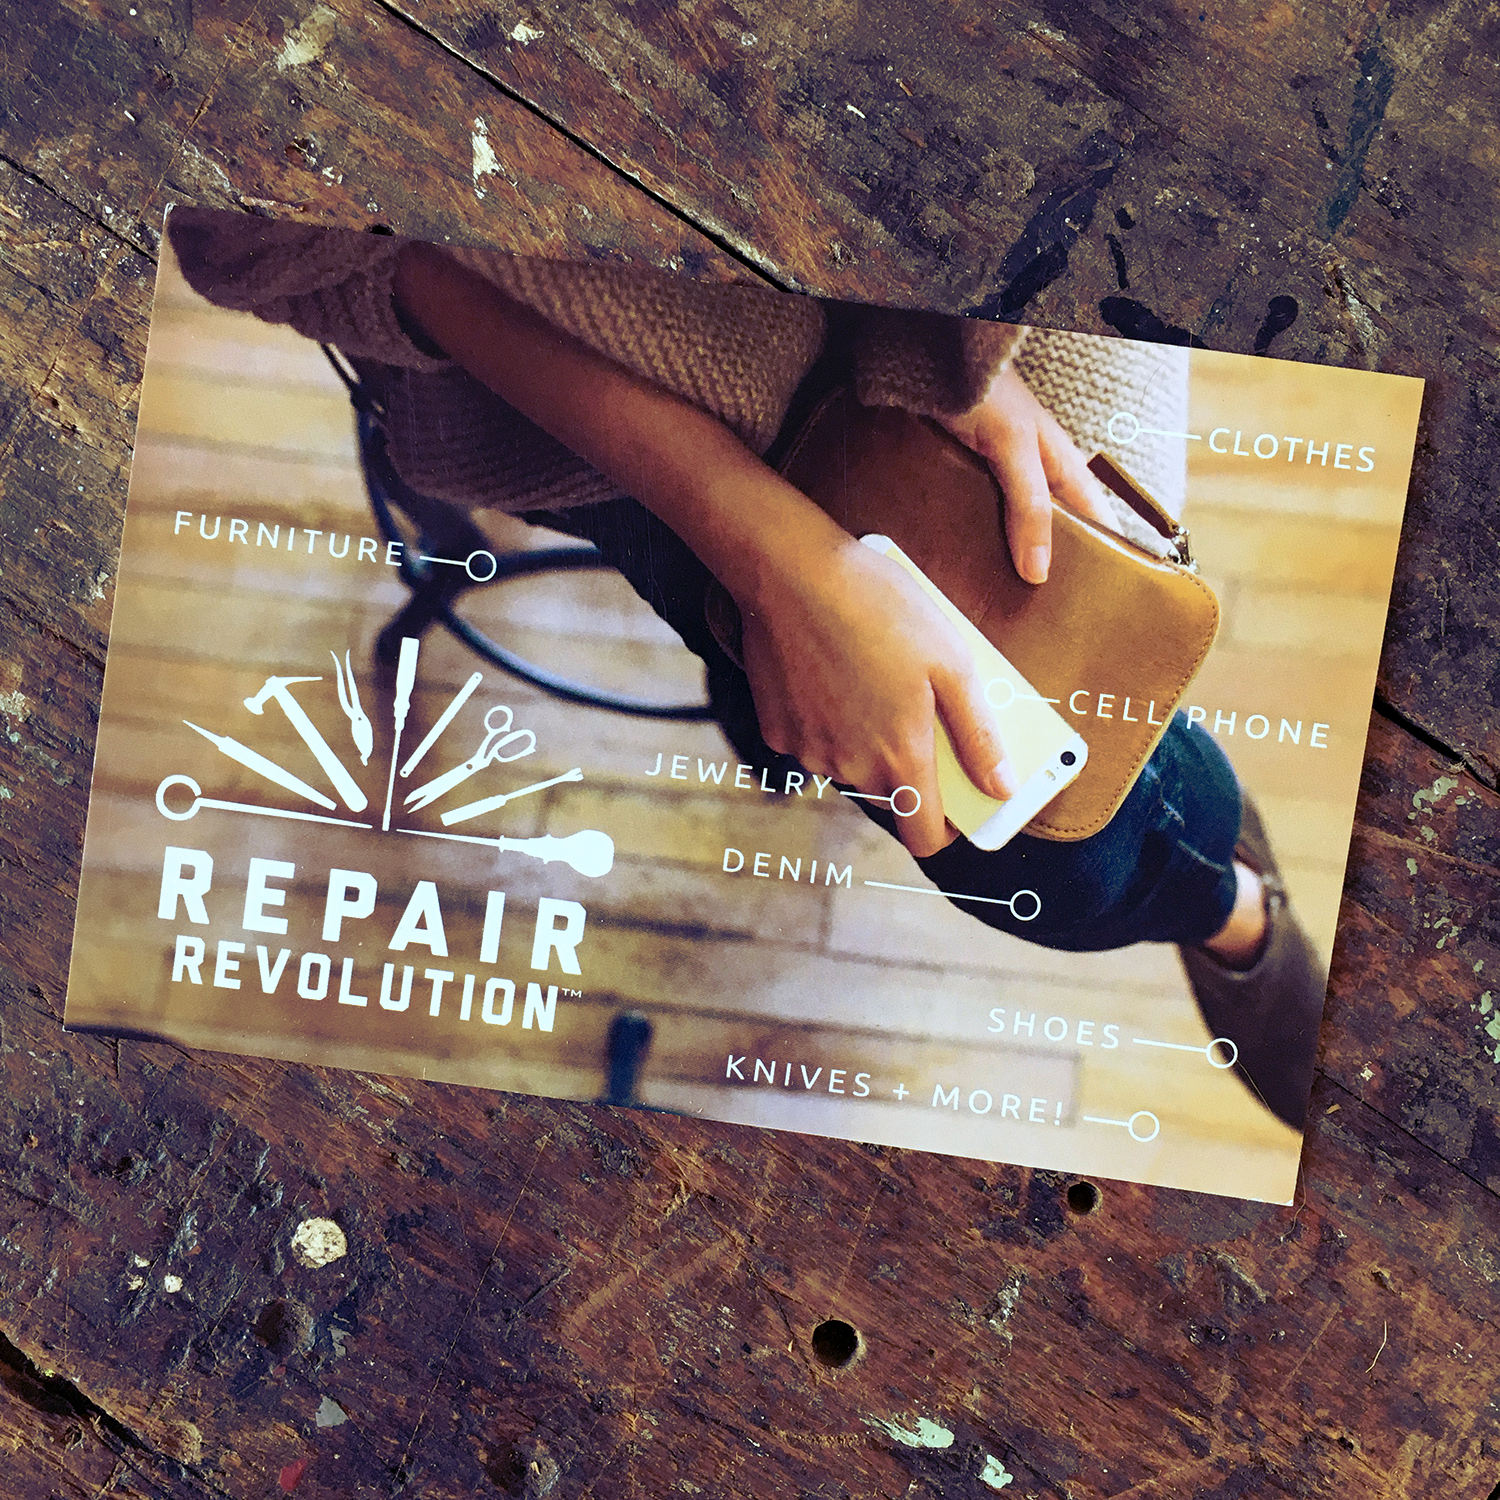 REPAIR REVOLUTION brand + marketing